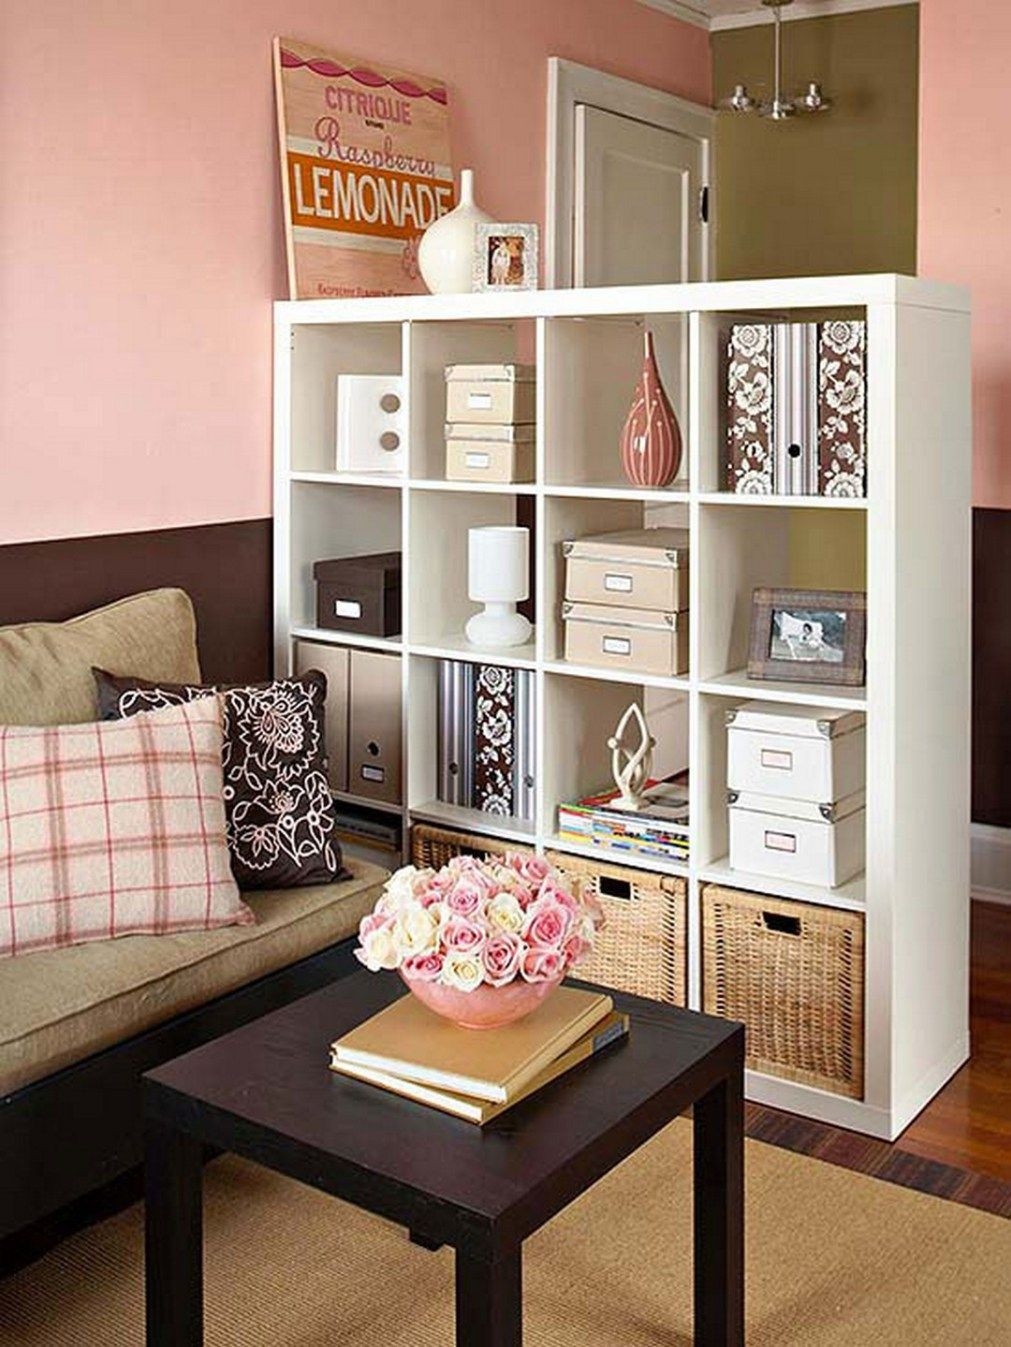 Space saving hallway furniture   Genius Apartement Storage Ideas for Small Spaces  Ideas Storage